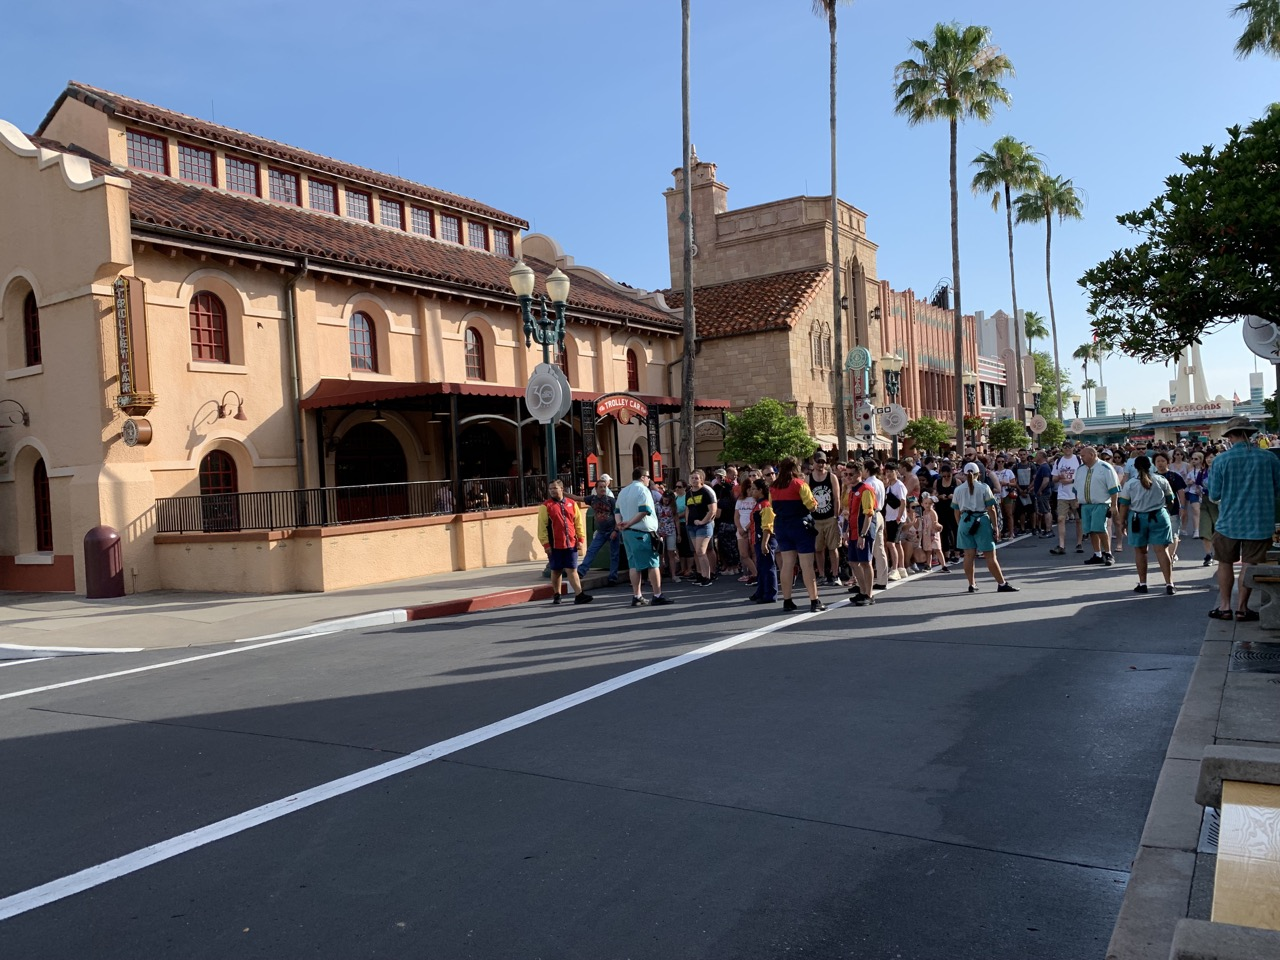 disney world trip report early summer 2019 day two 26 rope drop.jpeg